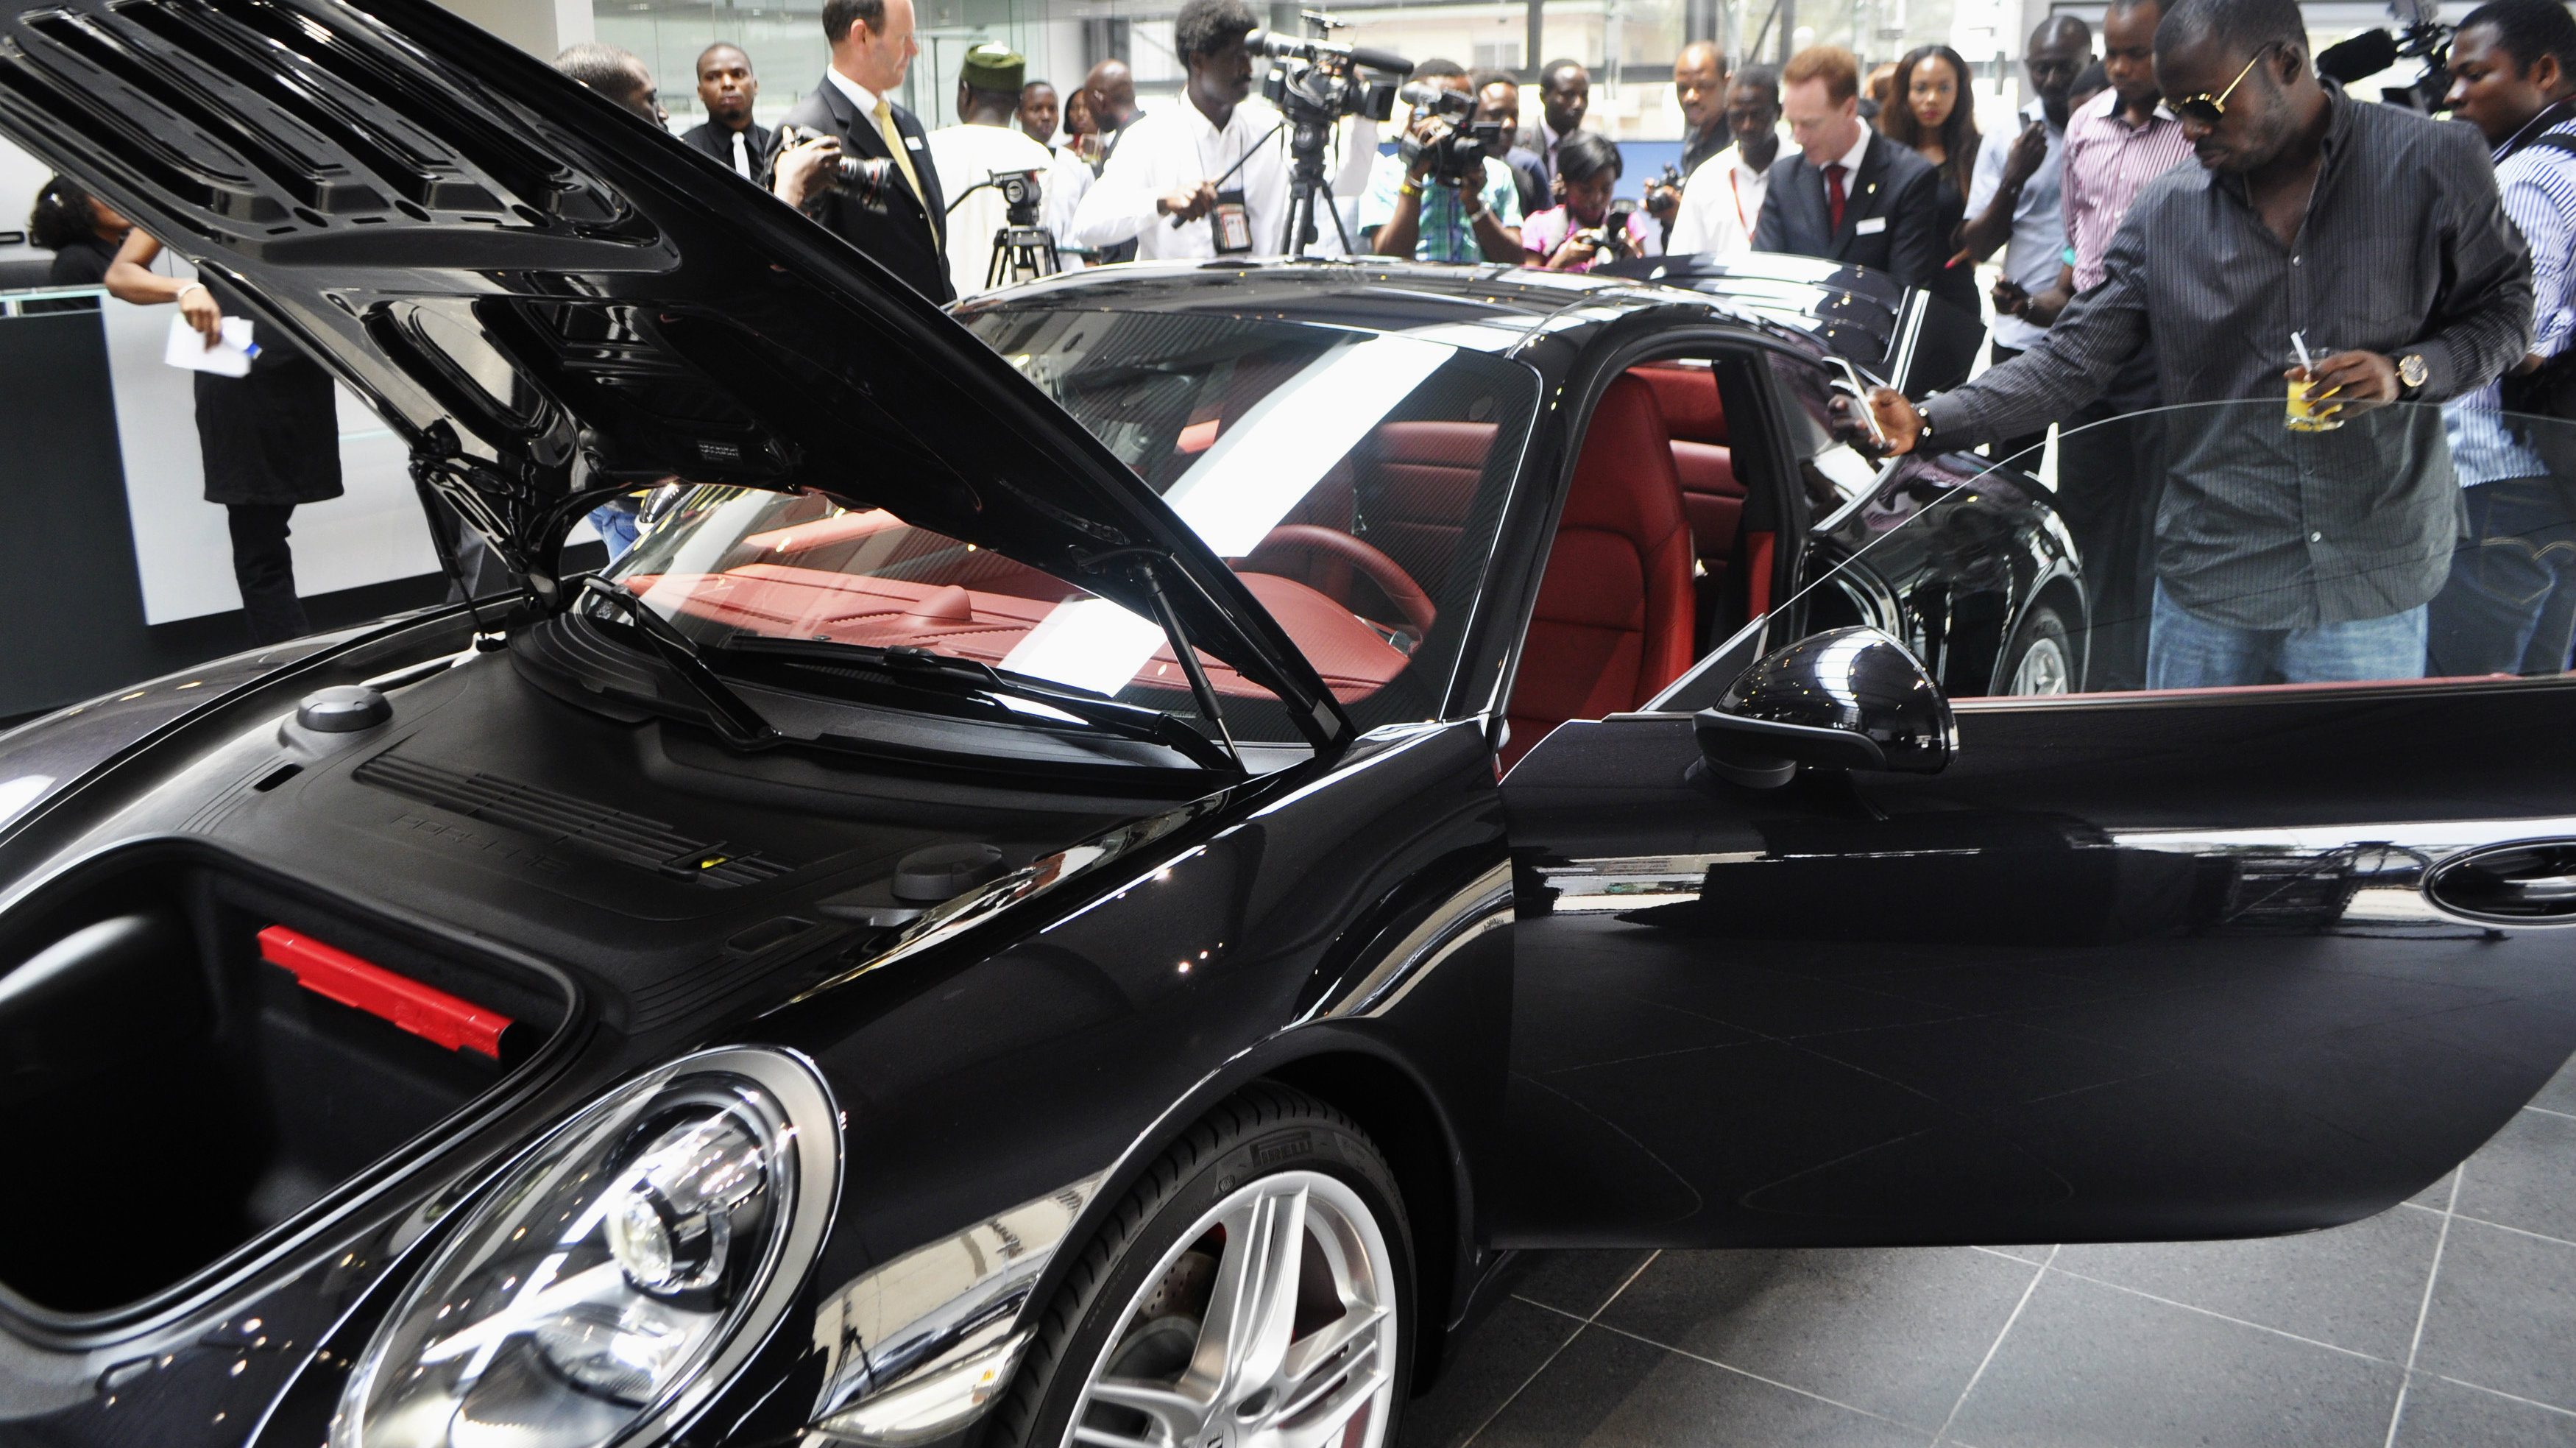 Nigerians look at a vehicle by German carmaker Porsche in Lagos March 14, 2012. Porsche officially opened a new car dealership on March 16 in the heart of Lagos' wealthiest district, Victoria Island, a place with one of the world's highest concentrations of millionaires. High-end goods producers are increasingly targeting sub-Saharan Africa, as its economic growth starts to dwarf other continents. As rich Western countries face a slowdown, sub-Saharan African economies are expected to see growth of six percent on average in 2012, according to the IMF. Nigeria, Africa's second biggest economy, grew 7.68 percent in the last quarter of 2011, one of the fastest in the world. Picture taken March 14, 2012. REUTERS/Monica Mark (NIGERIA - Tags: TRANSPORT BUSINESS SOCIETY)